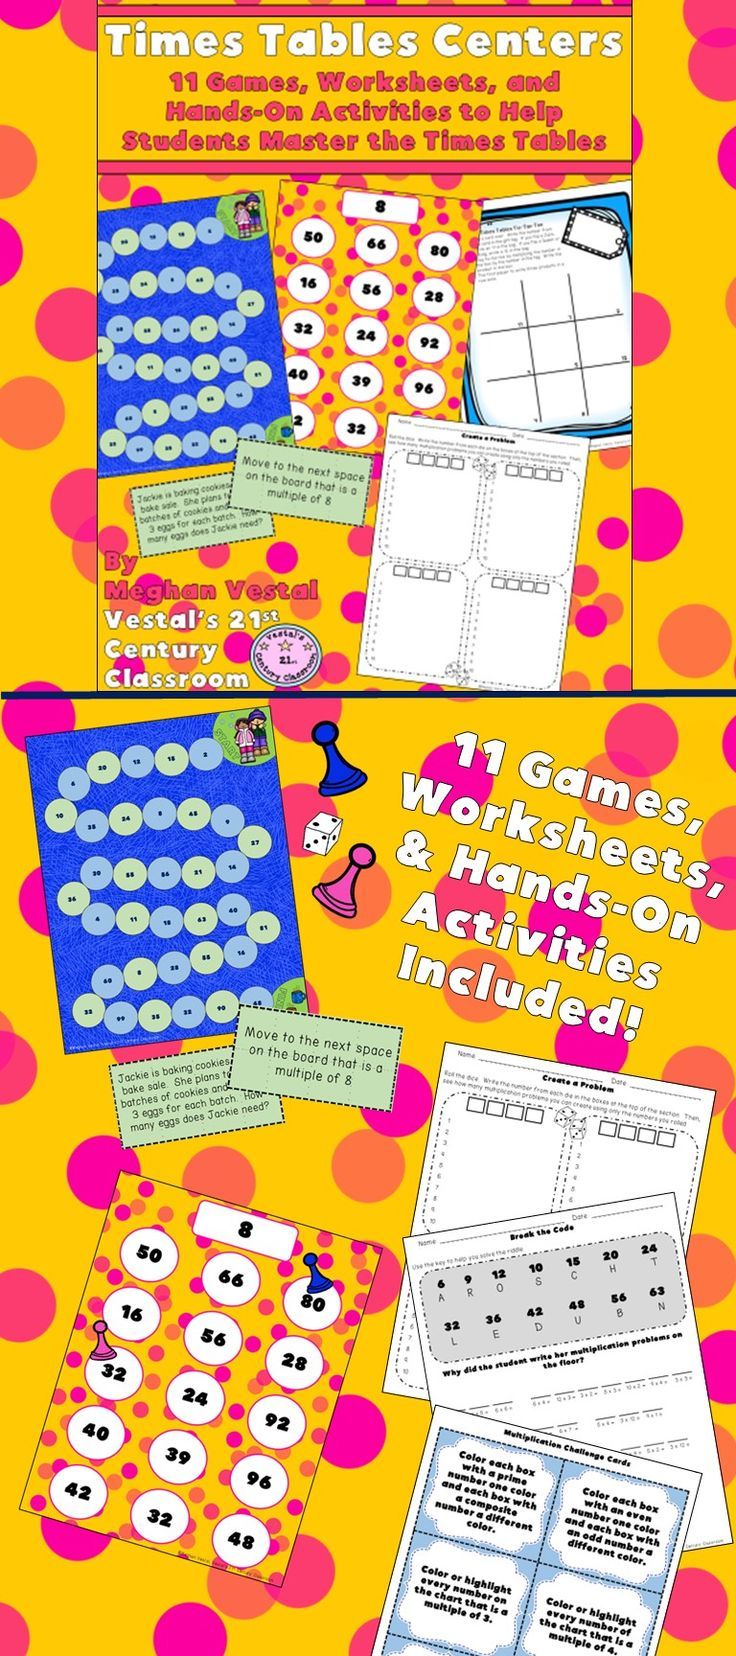 Times Tables Centers will help students master their times tables as they play these games and activities at centers throughout the year. 11 Activities are included and most activities provide options for differentiation so that they can be used multiple ways and for different skill levels. Centers are easy to put together and provide answer keys as needed. Games and activities cover the 2 through 12 times tables.